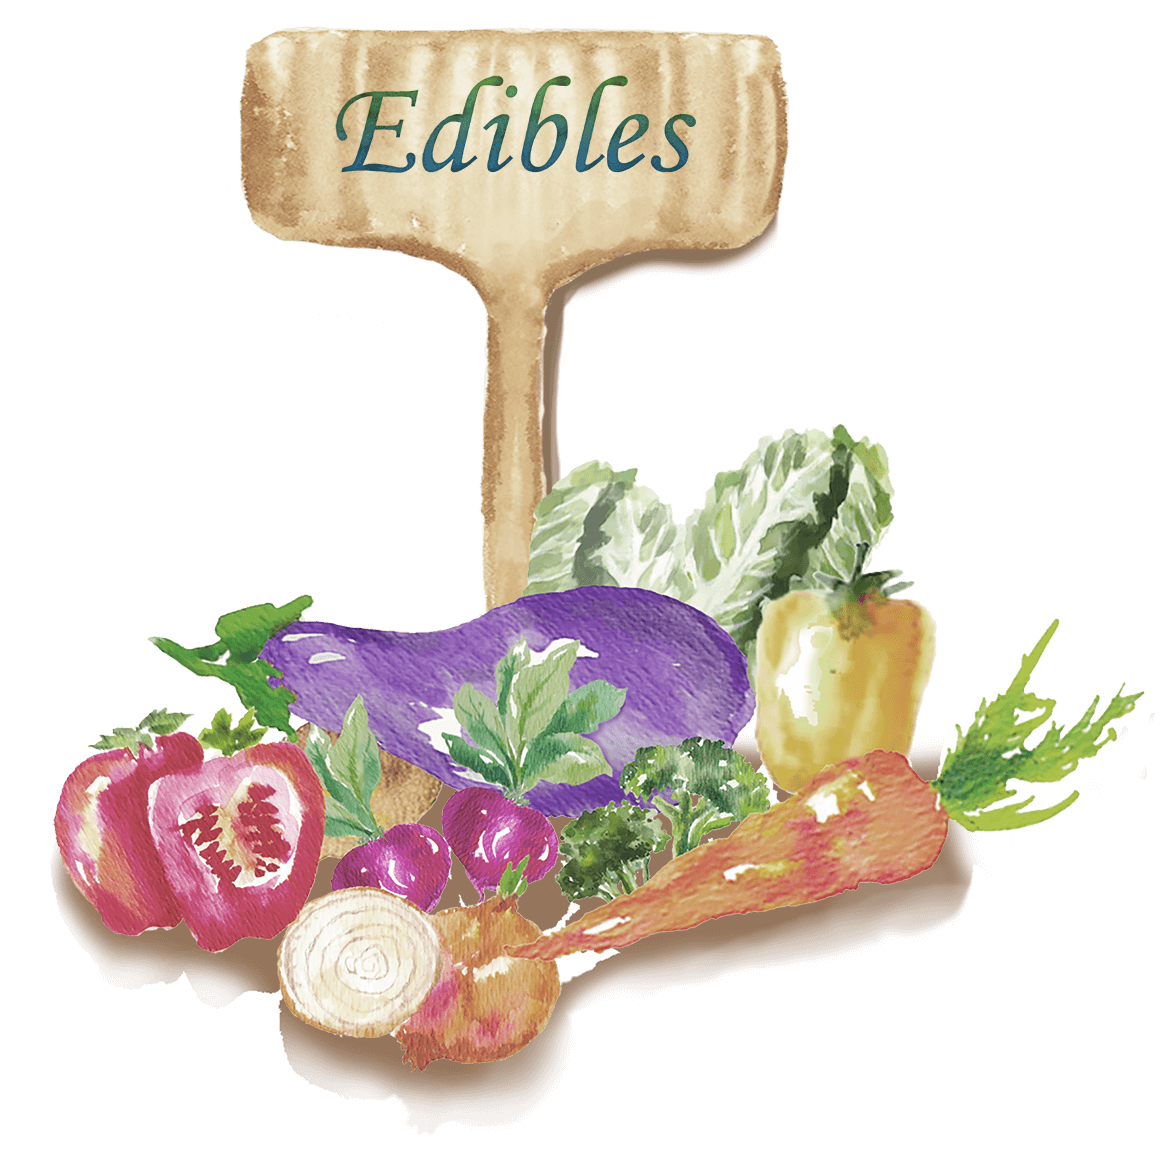 Search for Edible Plants